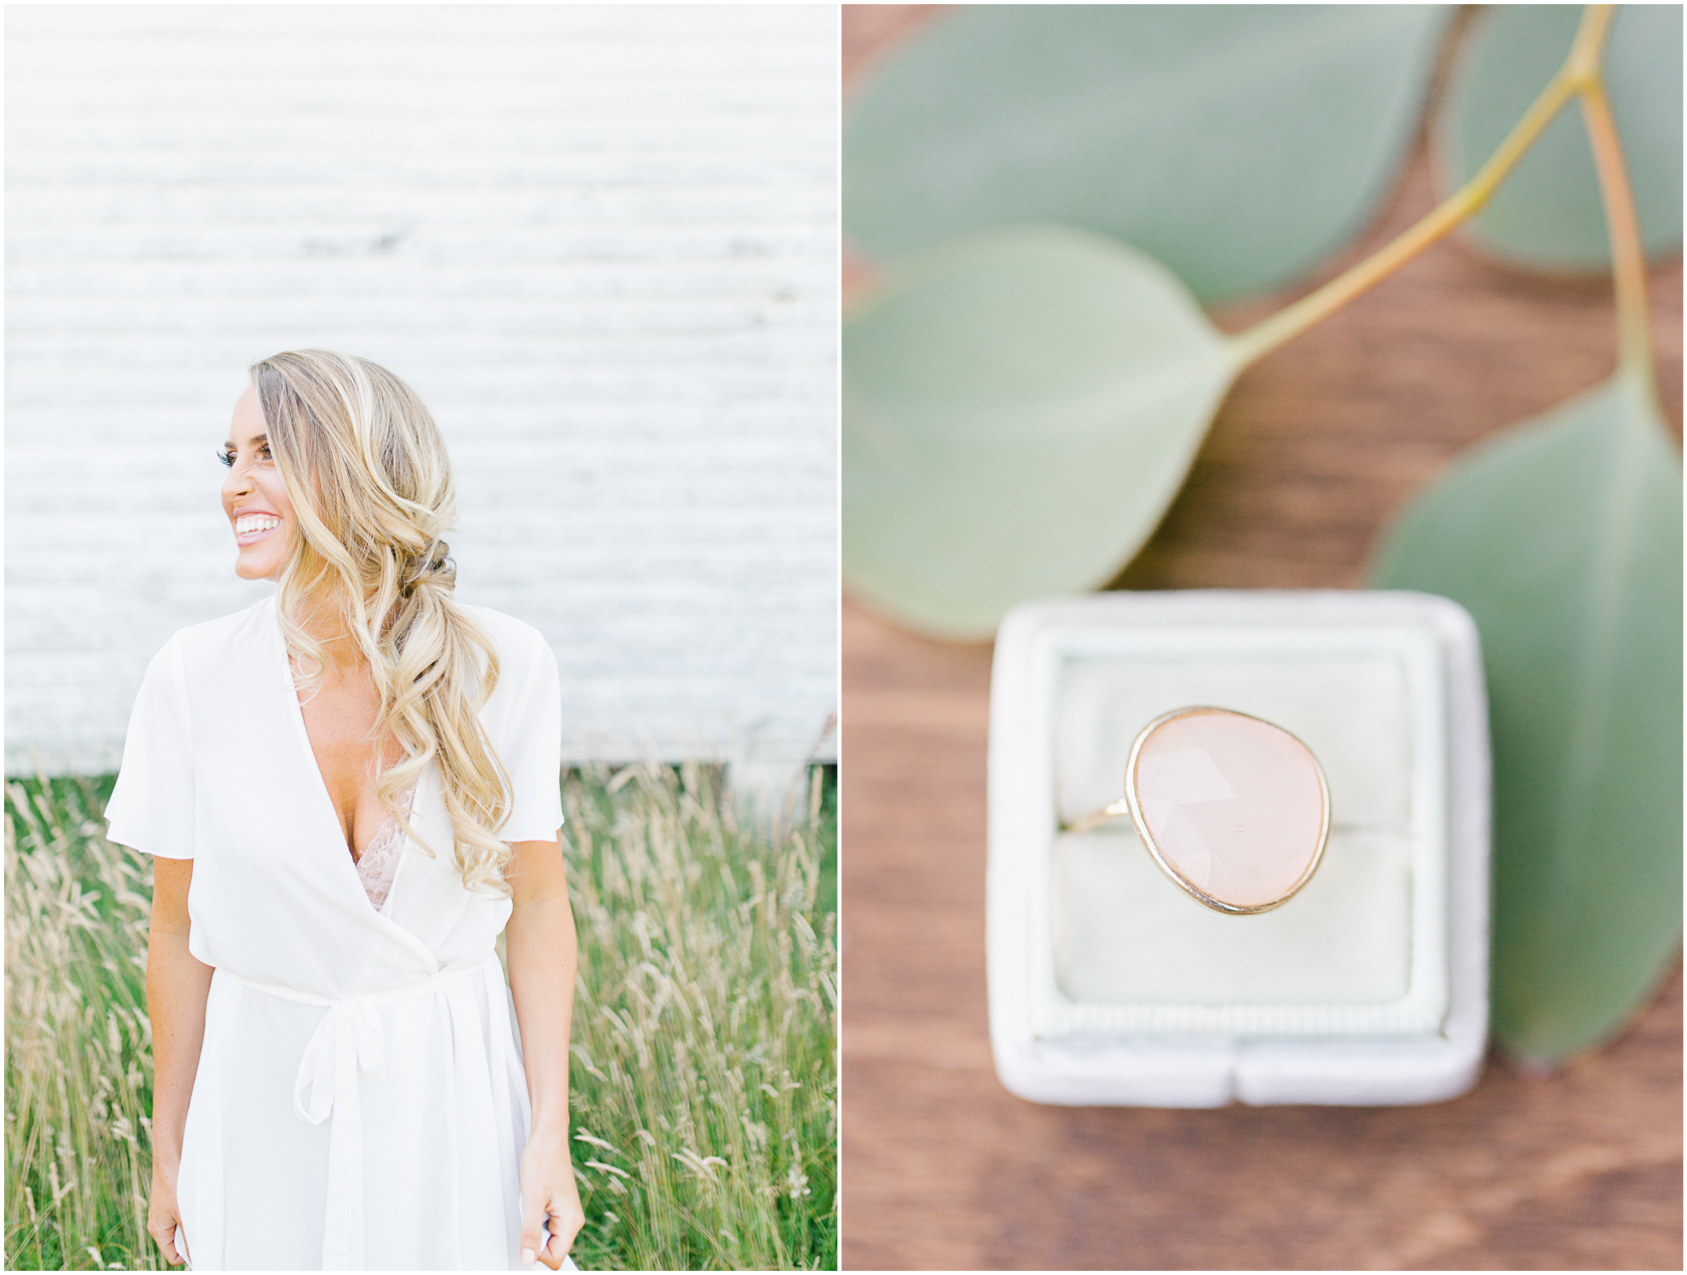 Dream Chasers Workshop on Rose Ranch | Emma Rose Company Education | Styled Shoot on a Ranch | Cattle Ranch Wedding | Rose Ranch Washington Wedding | Dream Chasers with Cameras | Styled Shoot | Beautiful Bride in Mumu Robe.jpg